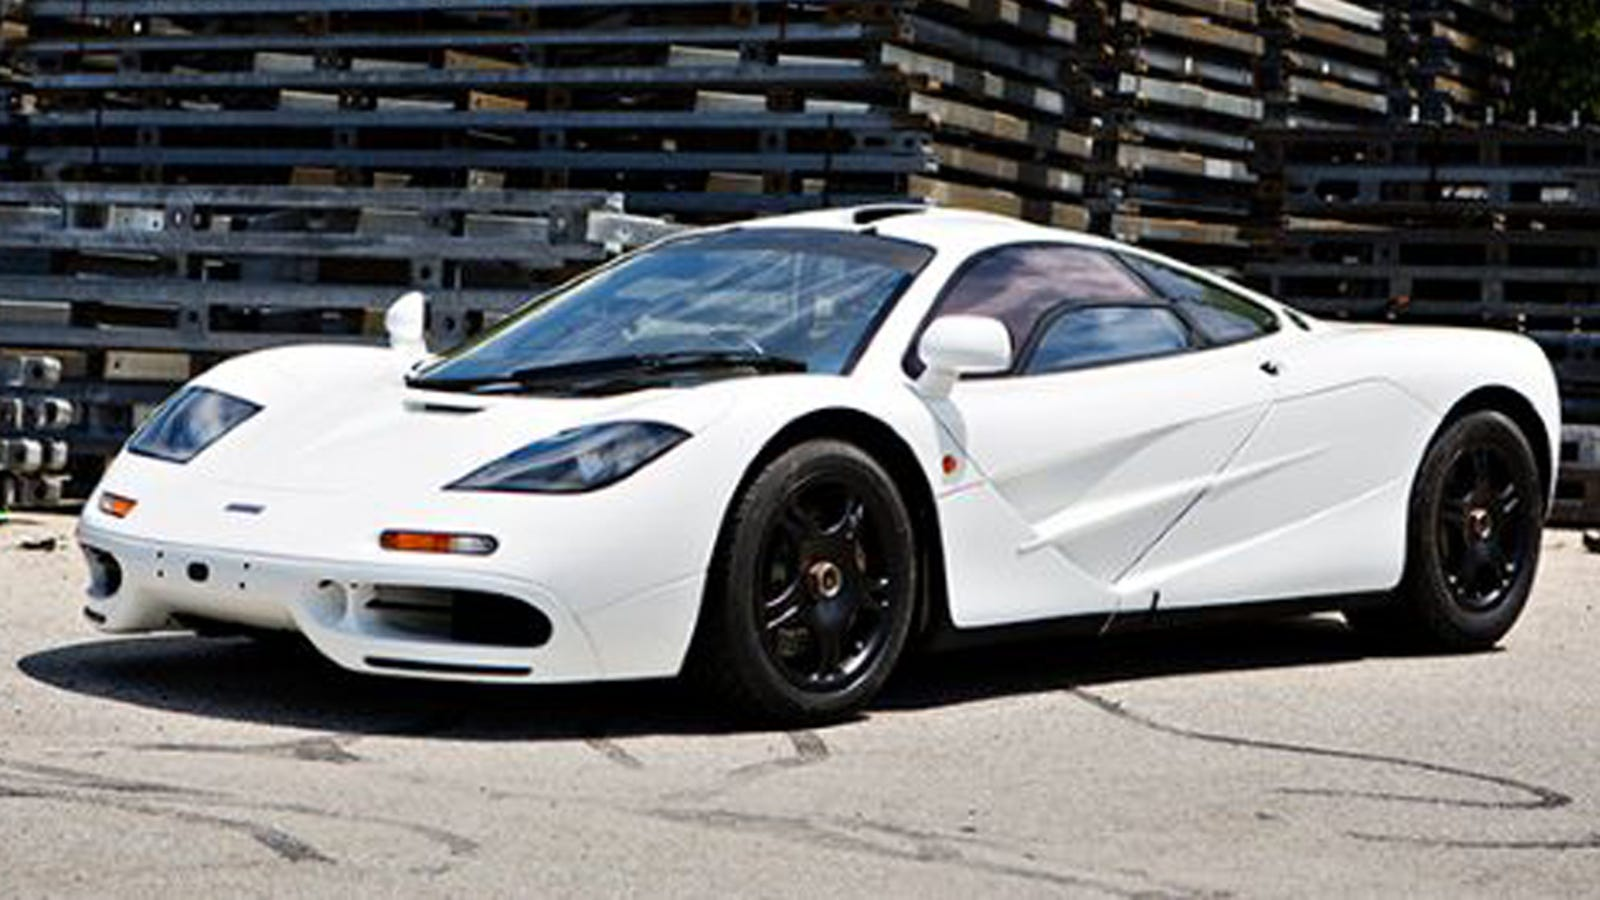 this unique white mclaren f1 could sell for $14 million